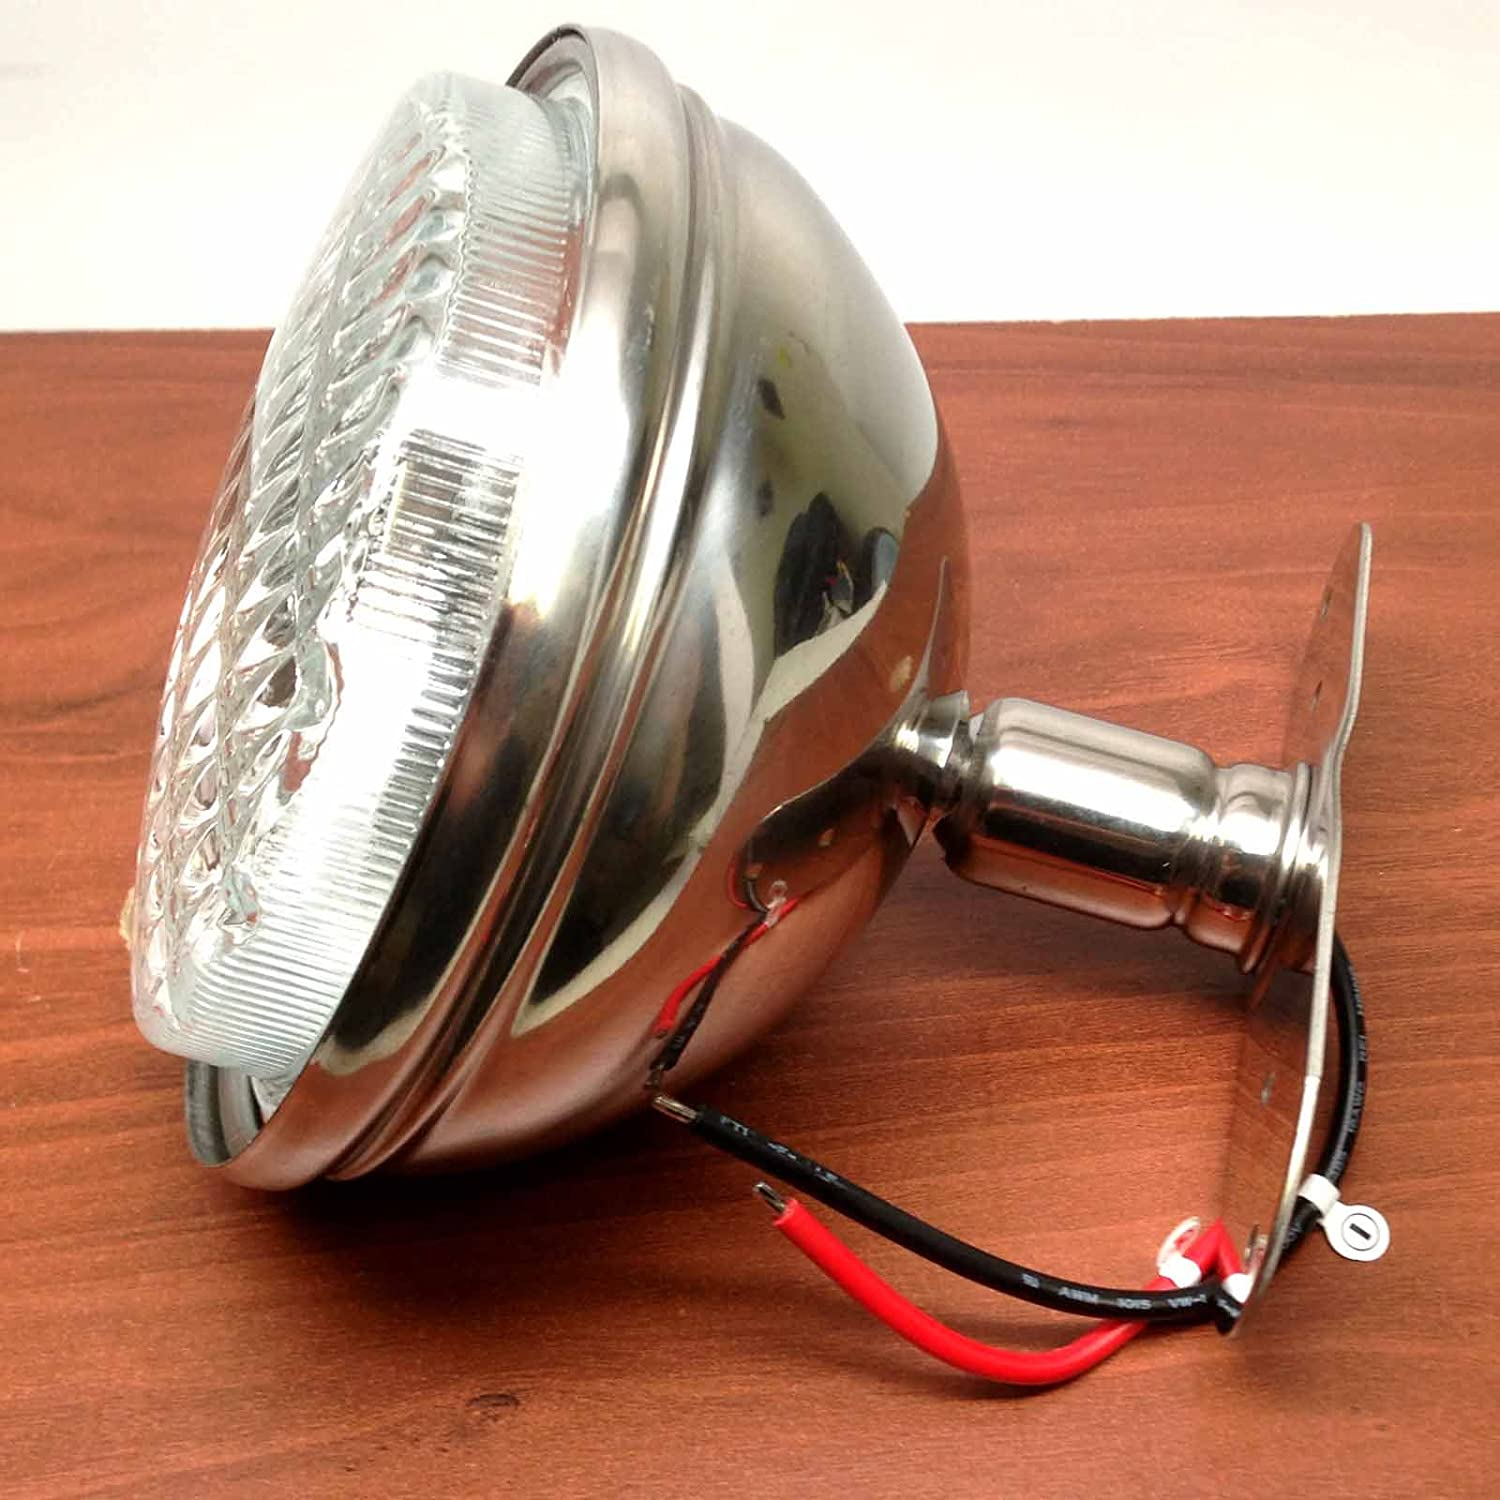 MARINE BOAT SPREADER LIGHT REPLACEMENT BRIGHT 55W 12V FIXED MOUNTING HALOGEN